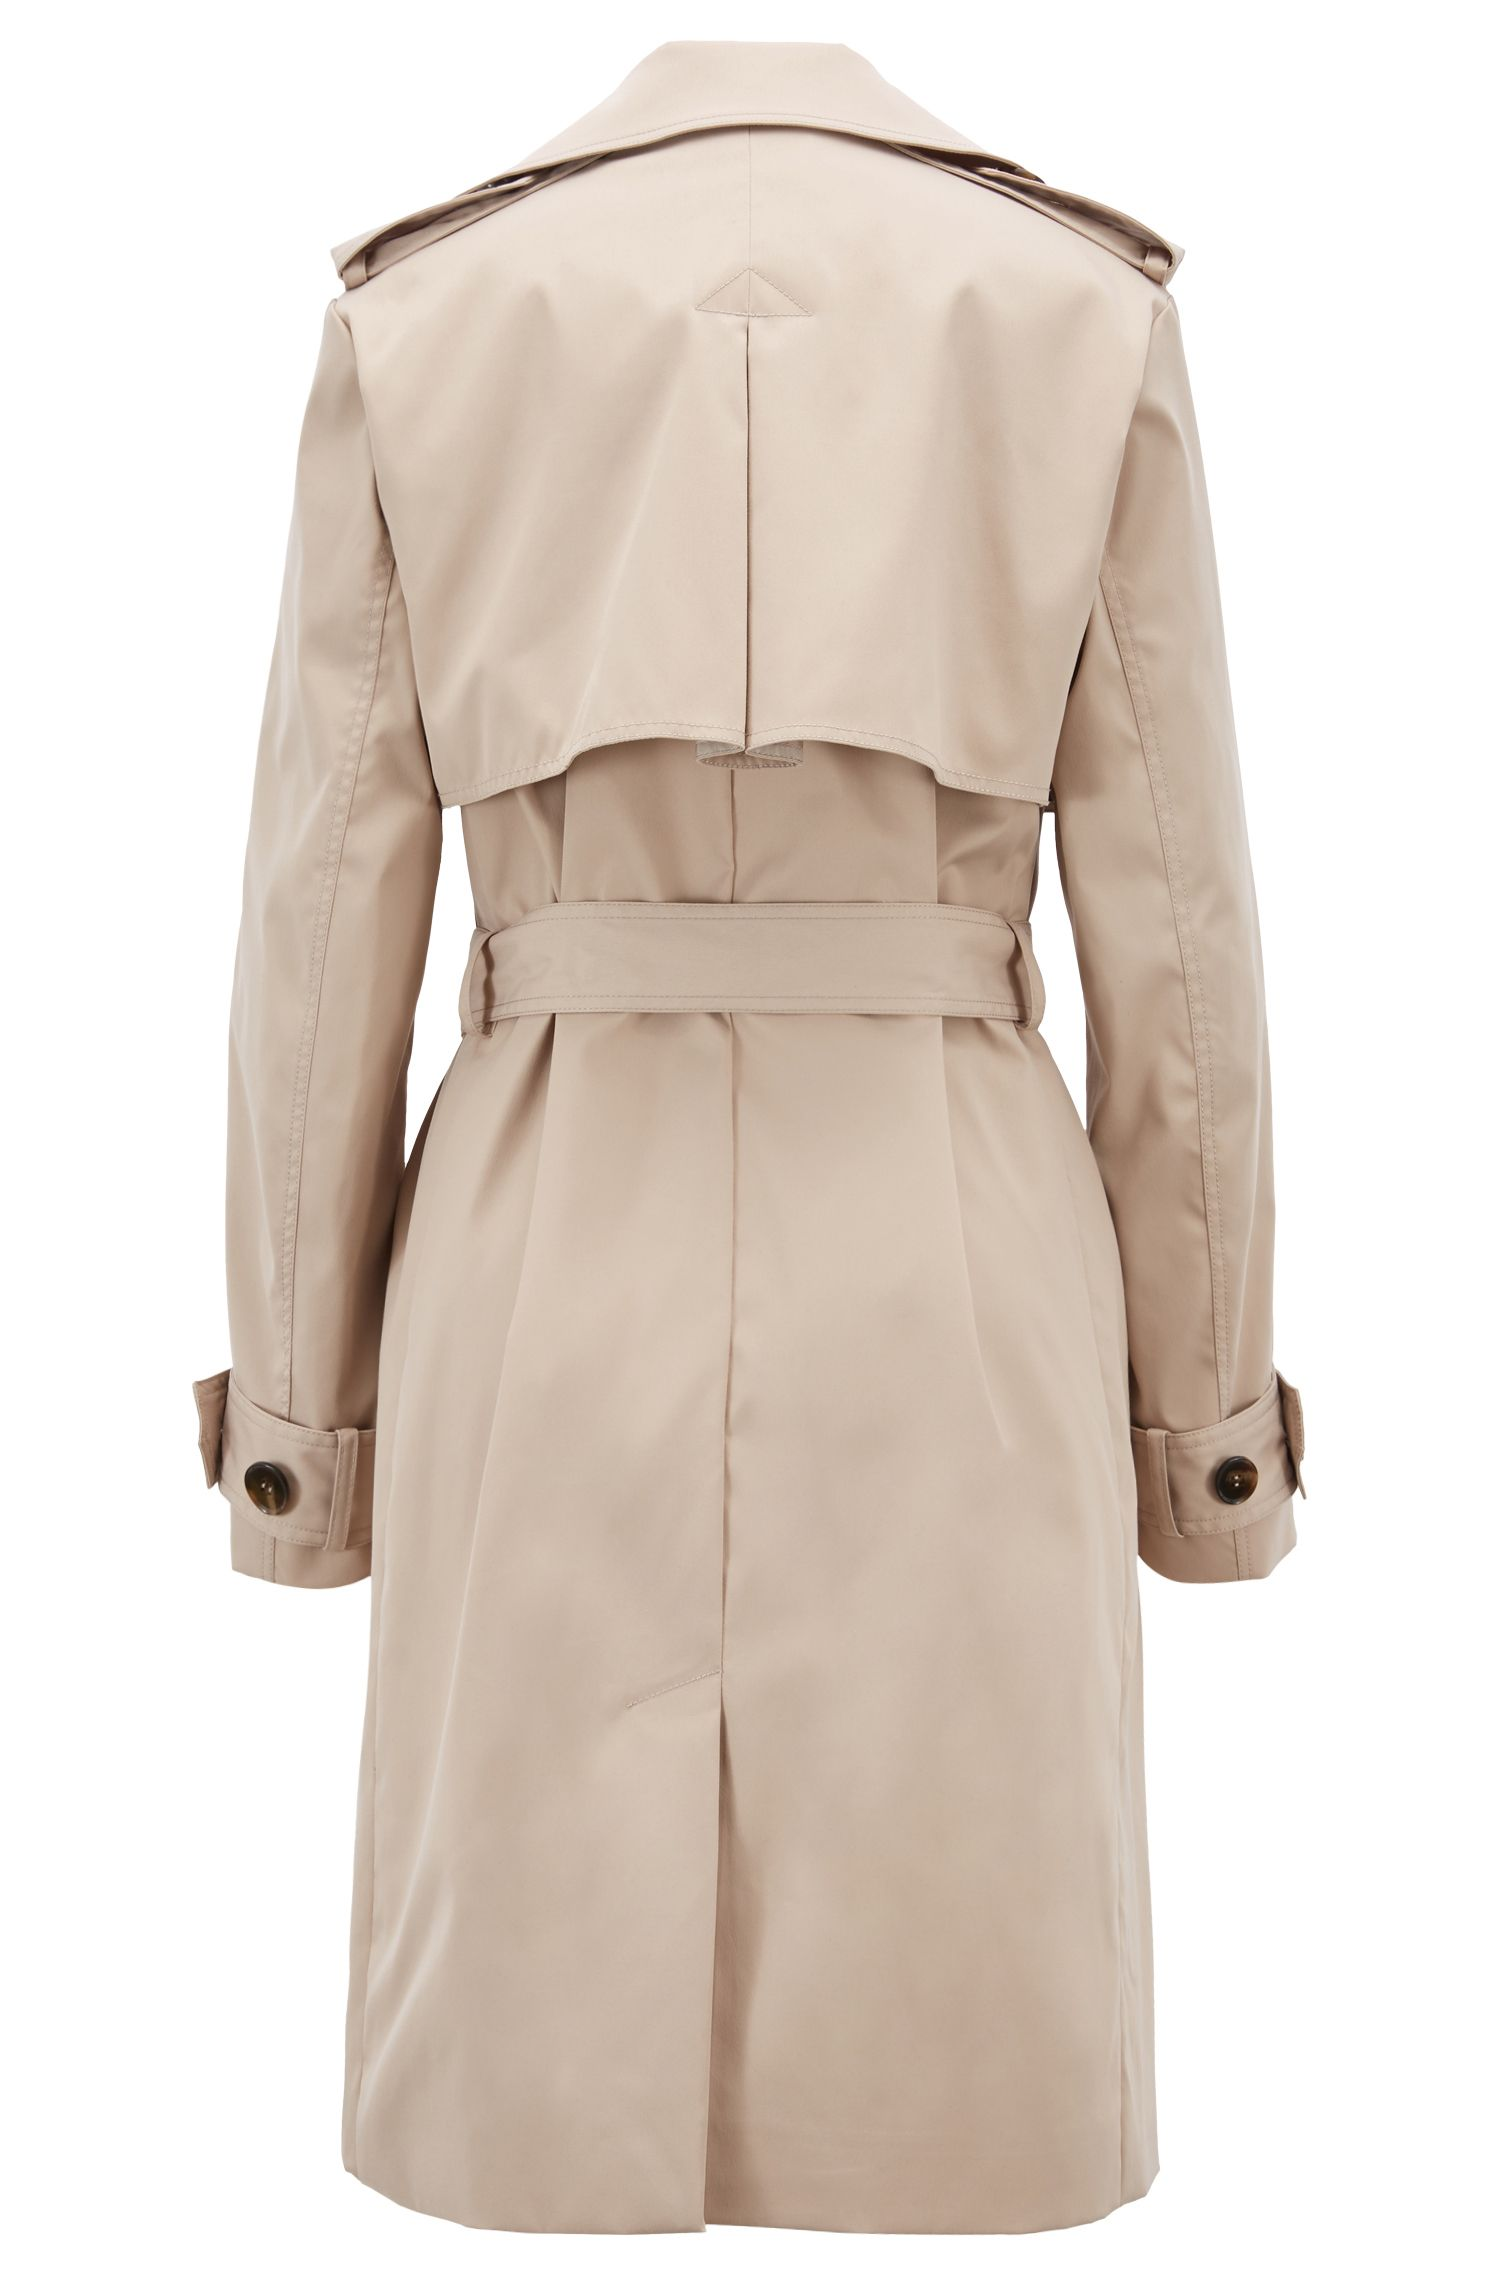 Hugo Boss - Double-breasted trench coat with oversized lapels - 3